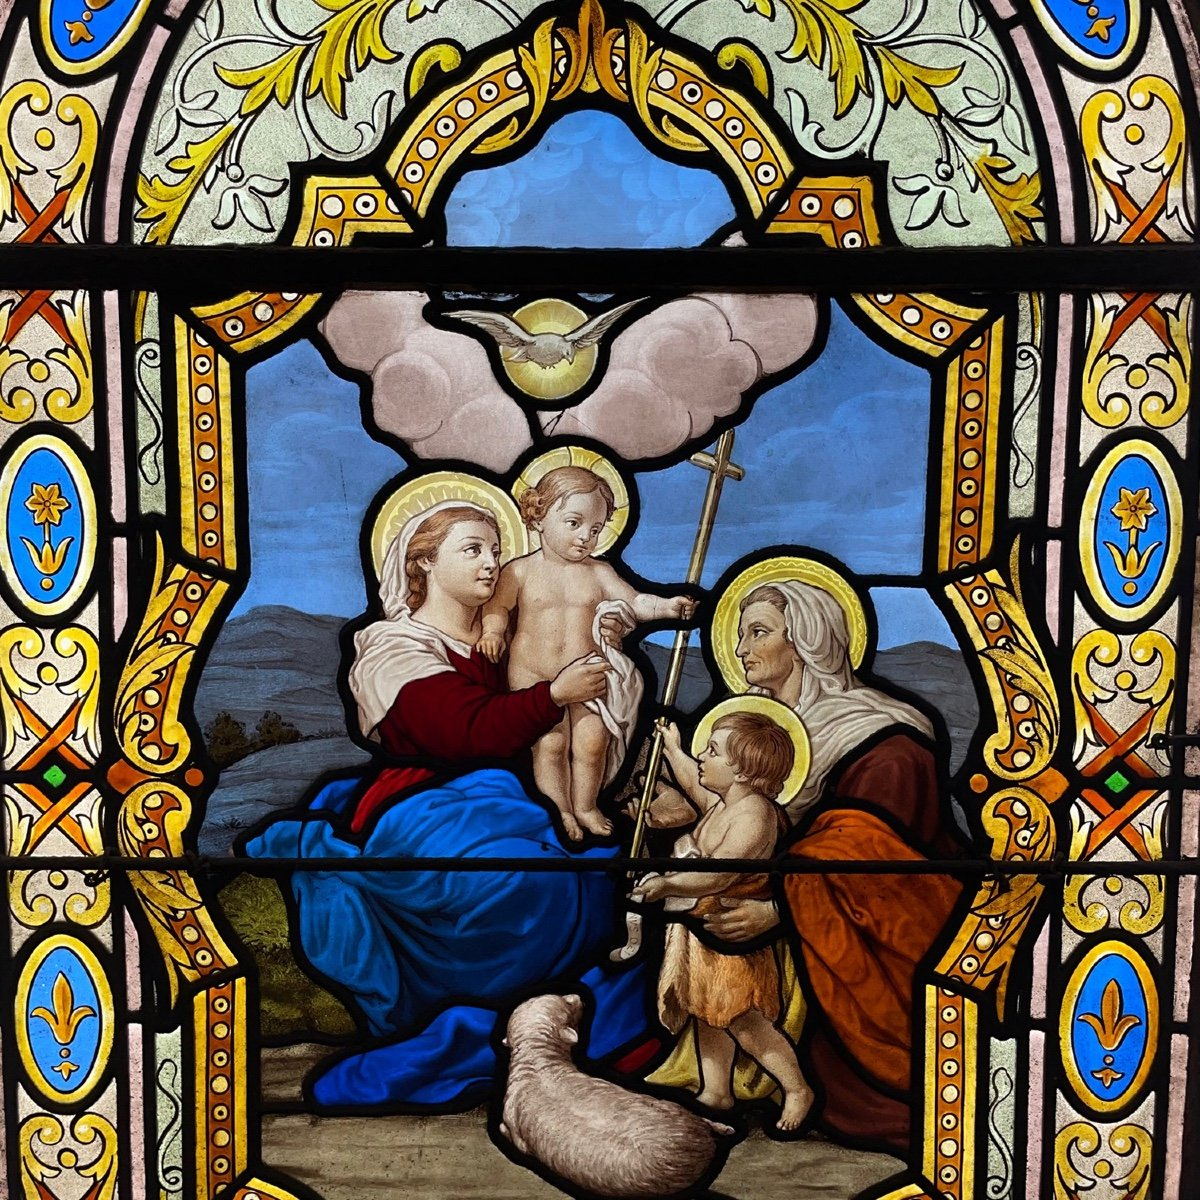 Stained Glass Window Stained Glass The Virgin The Child Jesus And Saint John The Baptist-photo-2